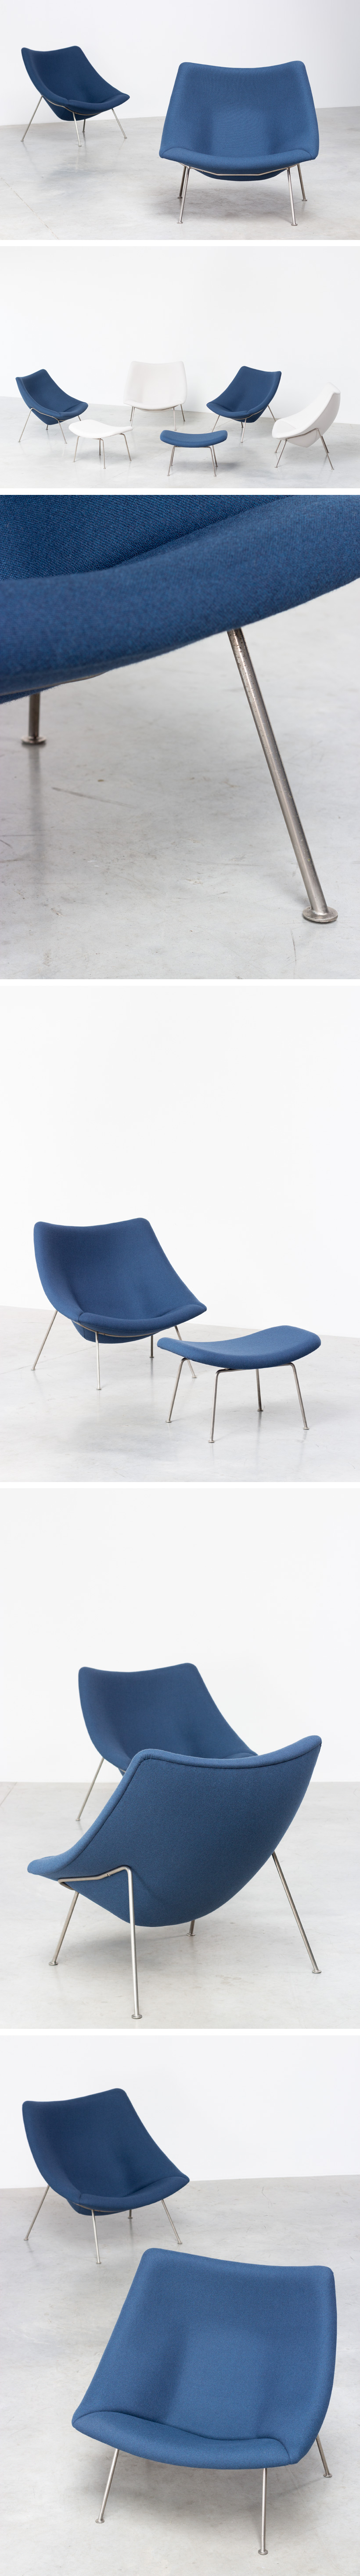 Paulin Pierre Oyster F159 pair of lounge chairs with ottoman Artifort Large